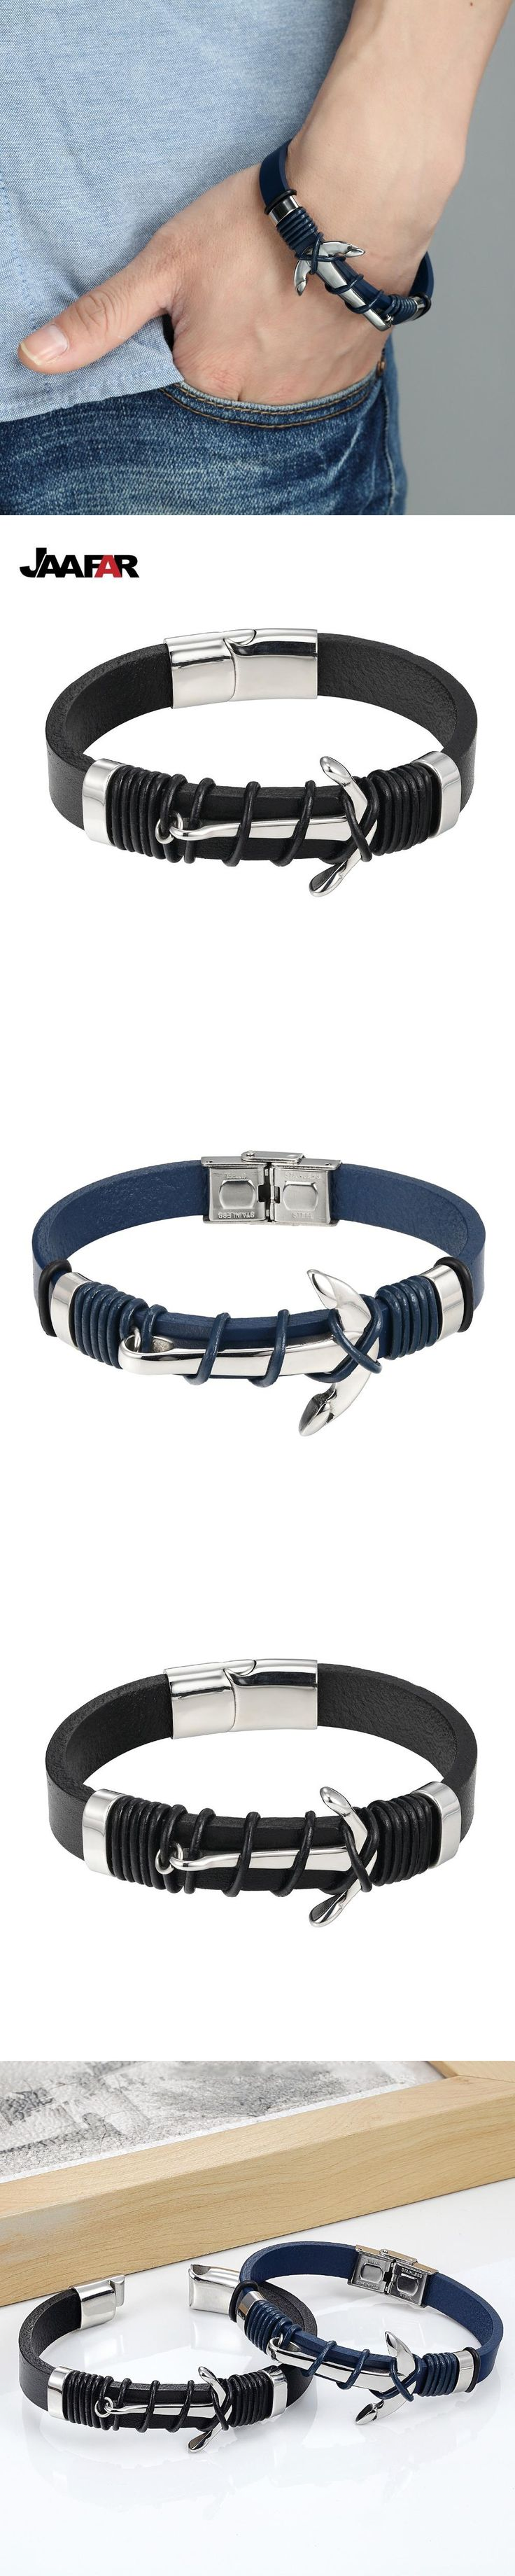 JAAFAR Fashion Jewelry high quality Stainless Steel Anchor Bracelet Men Leather Bracelet for Women&Men friendship bracelets